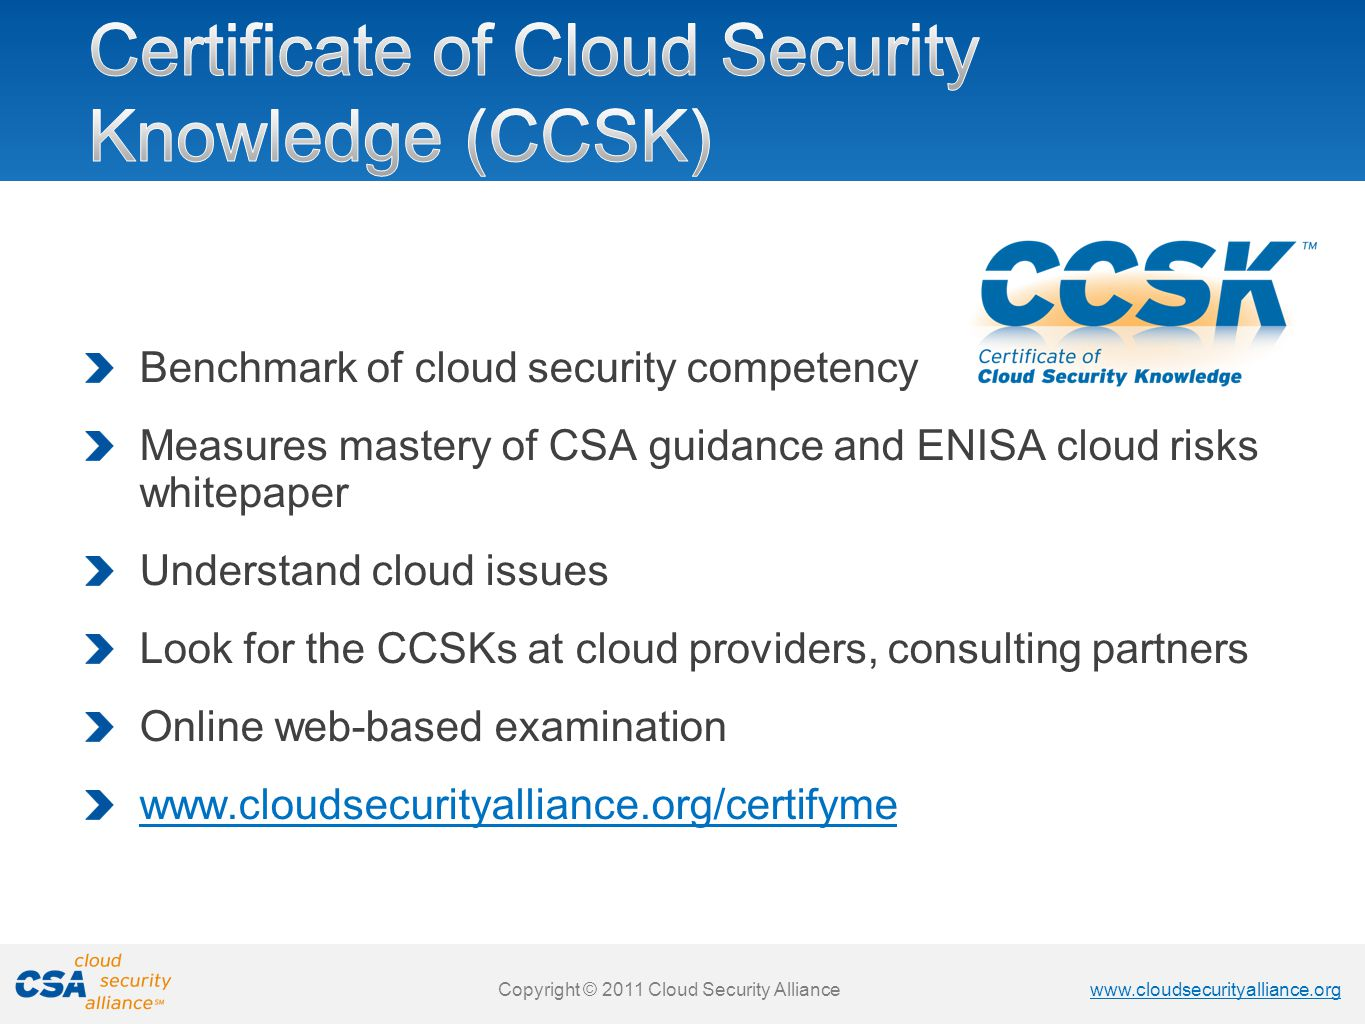 Certificate of Cloud Security Knowledge (CCSK)